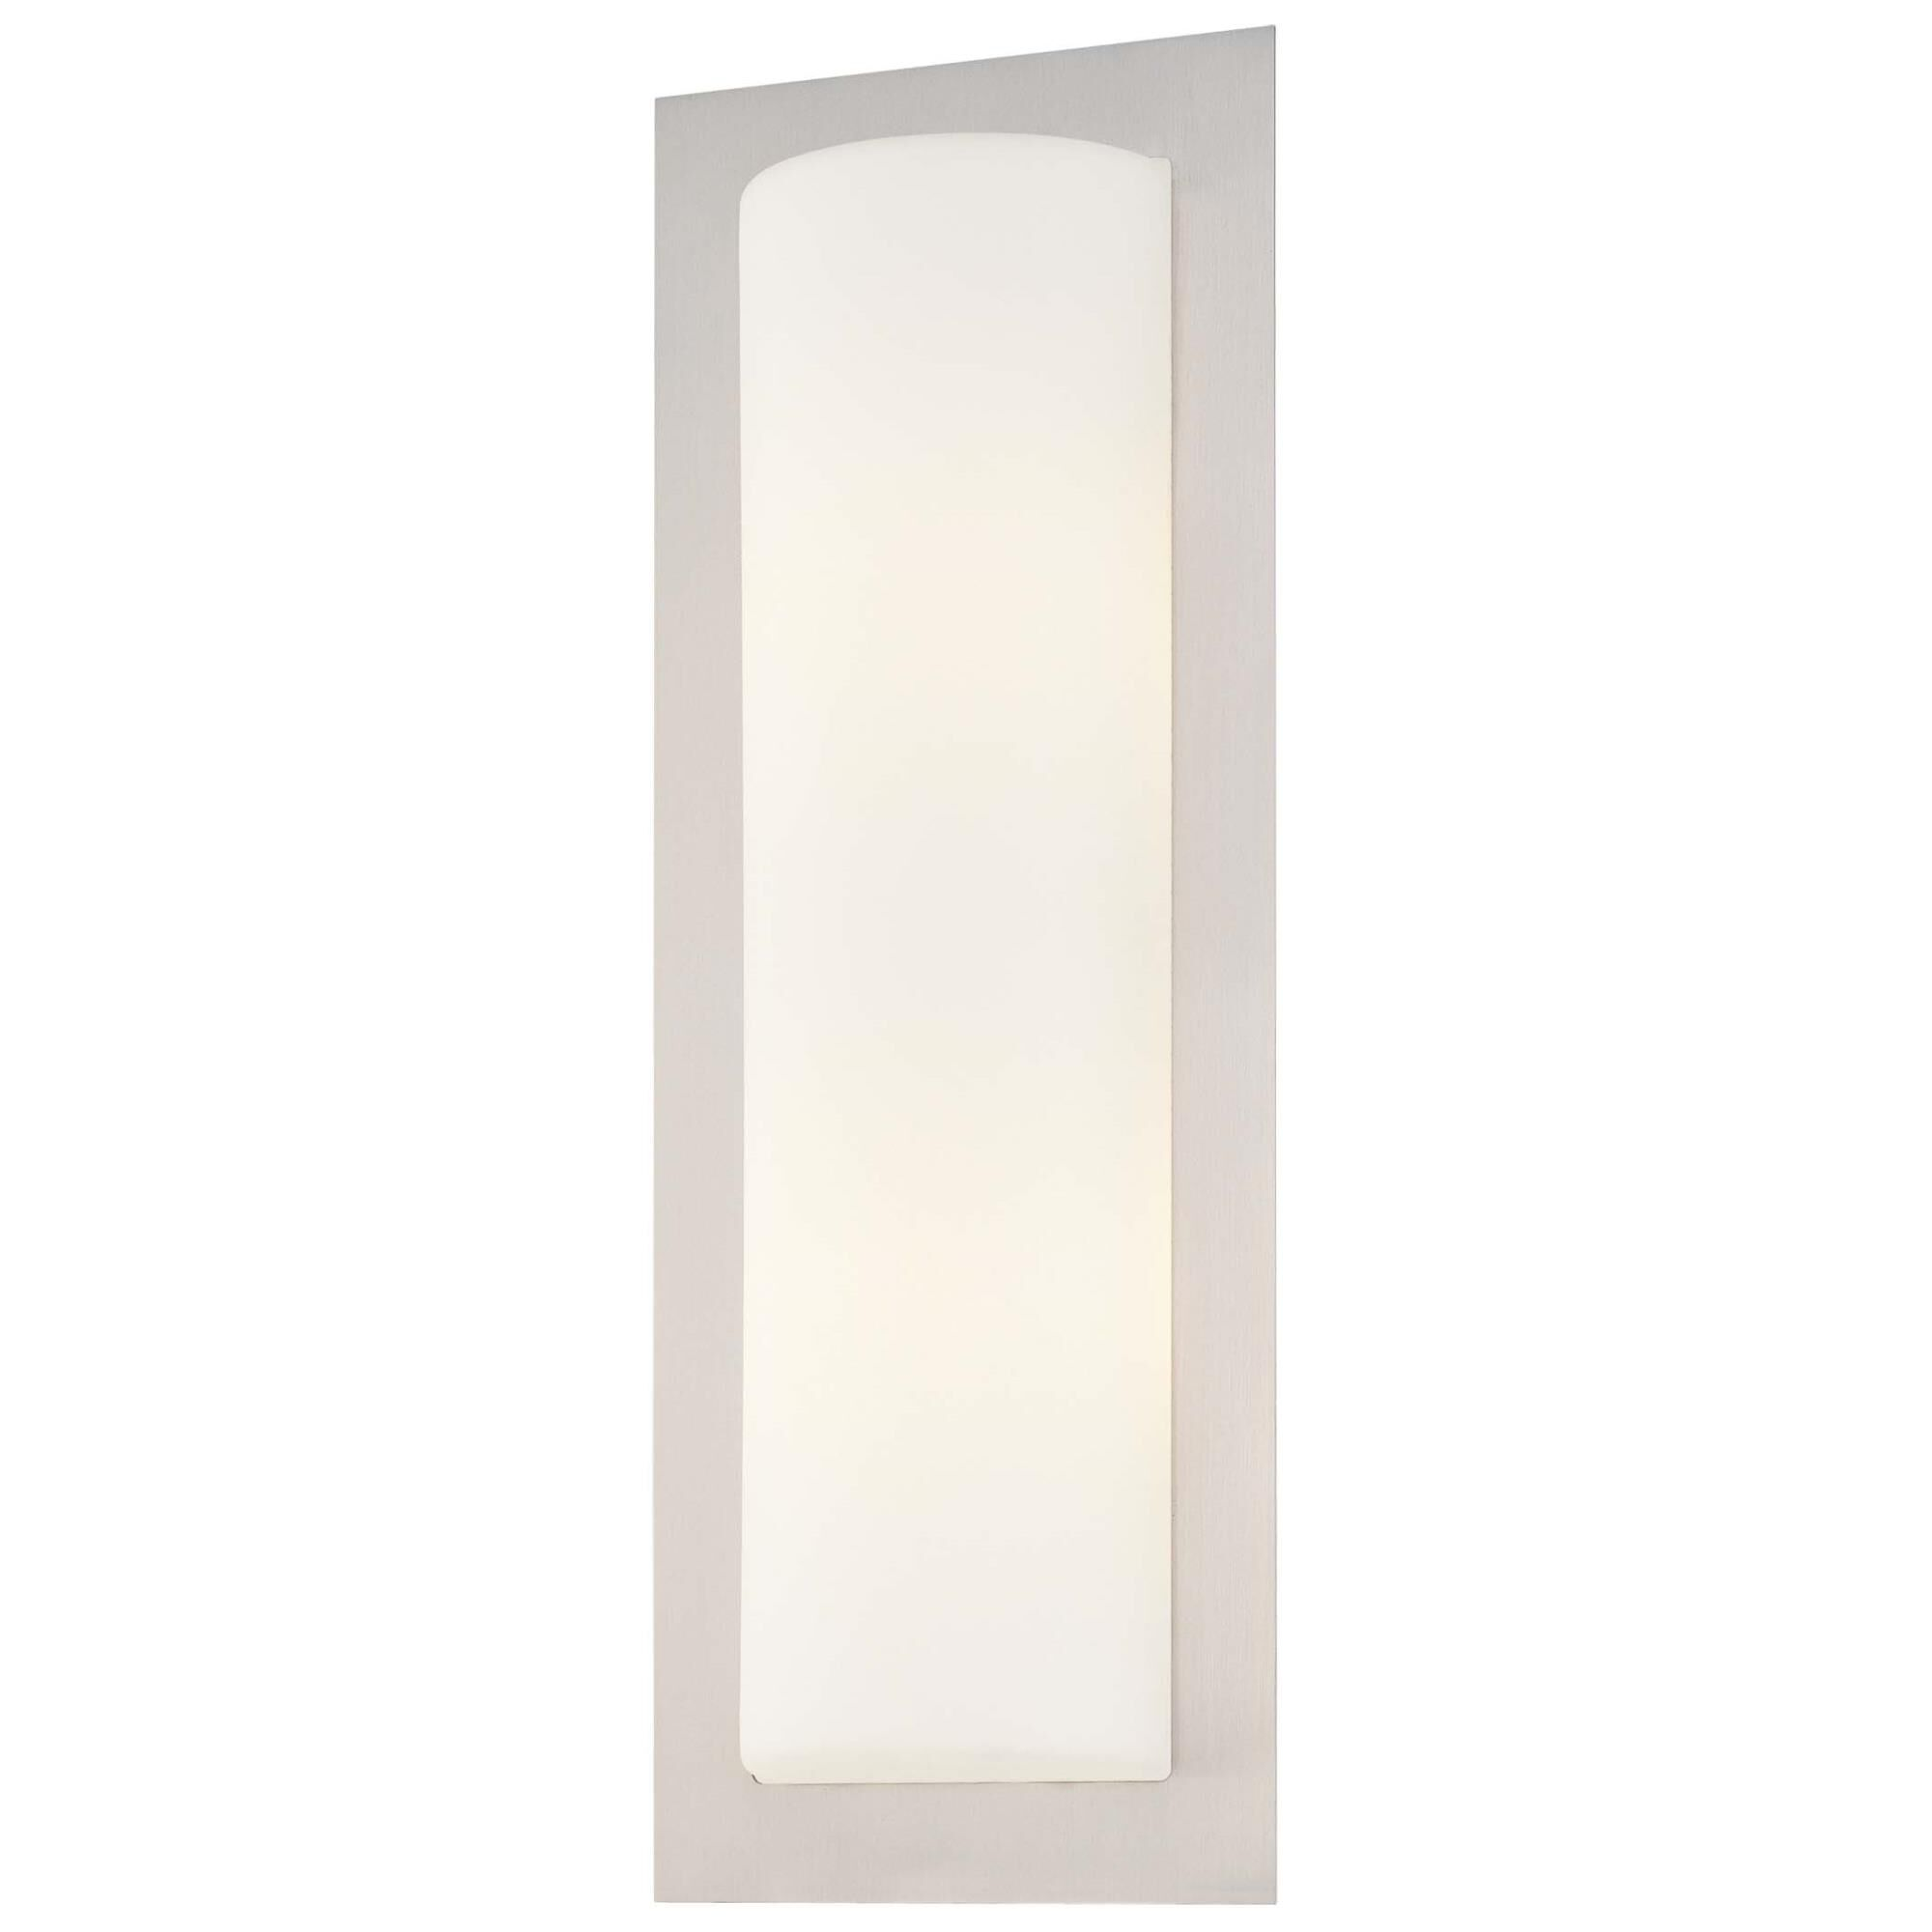 Kovacs 18 Inch Wall Sconce - P563-144a - Modern Contemporary